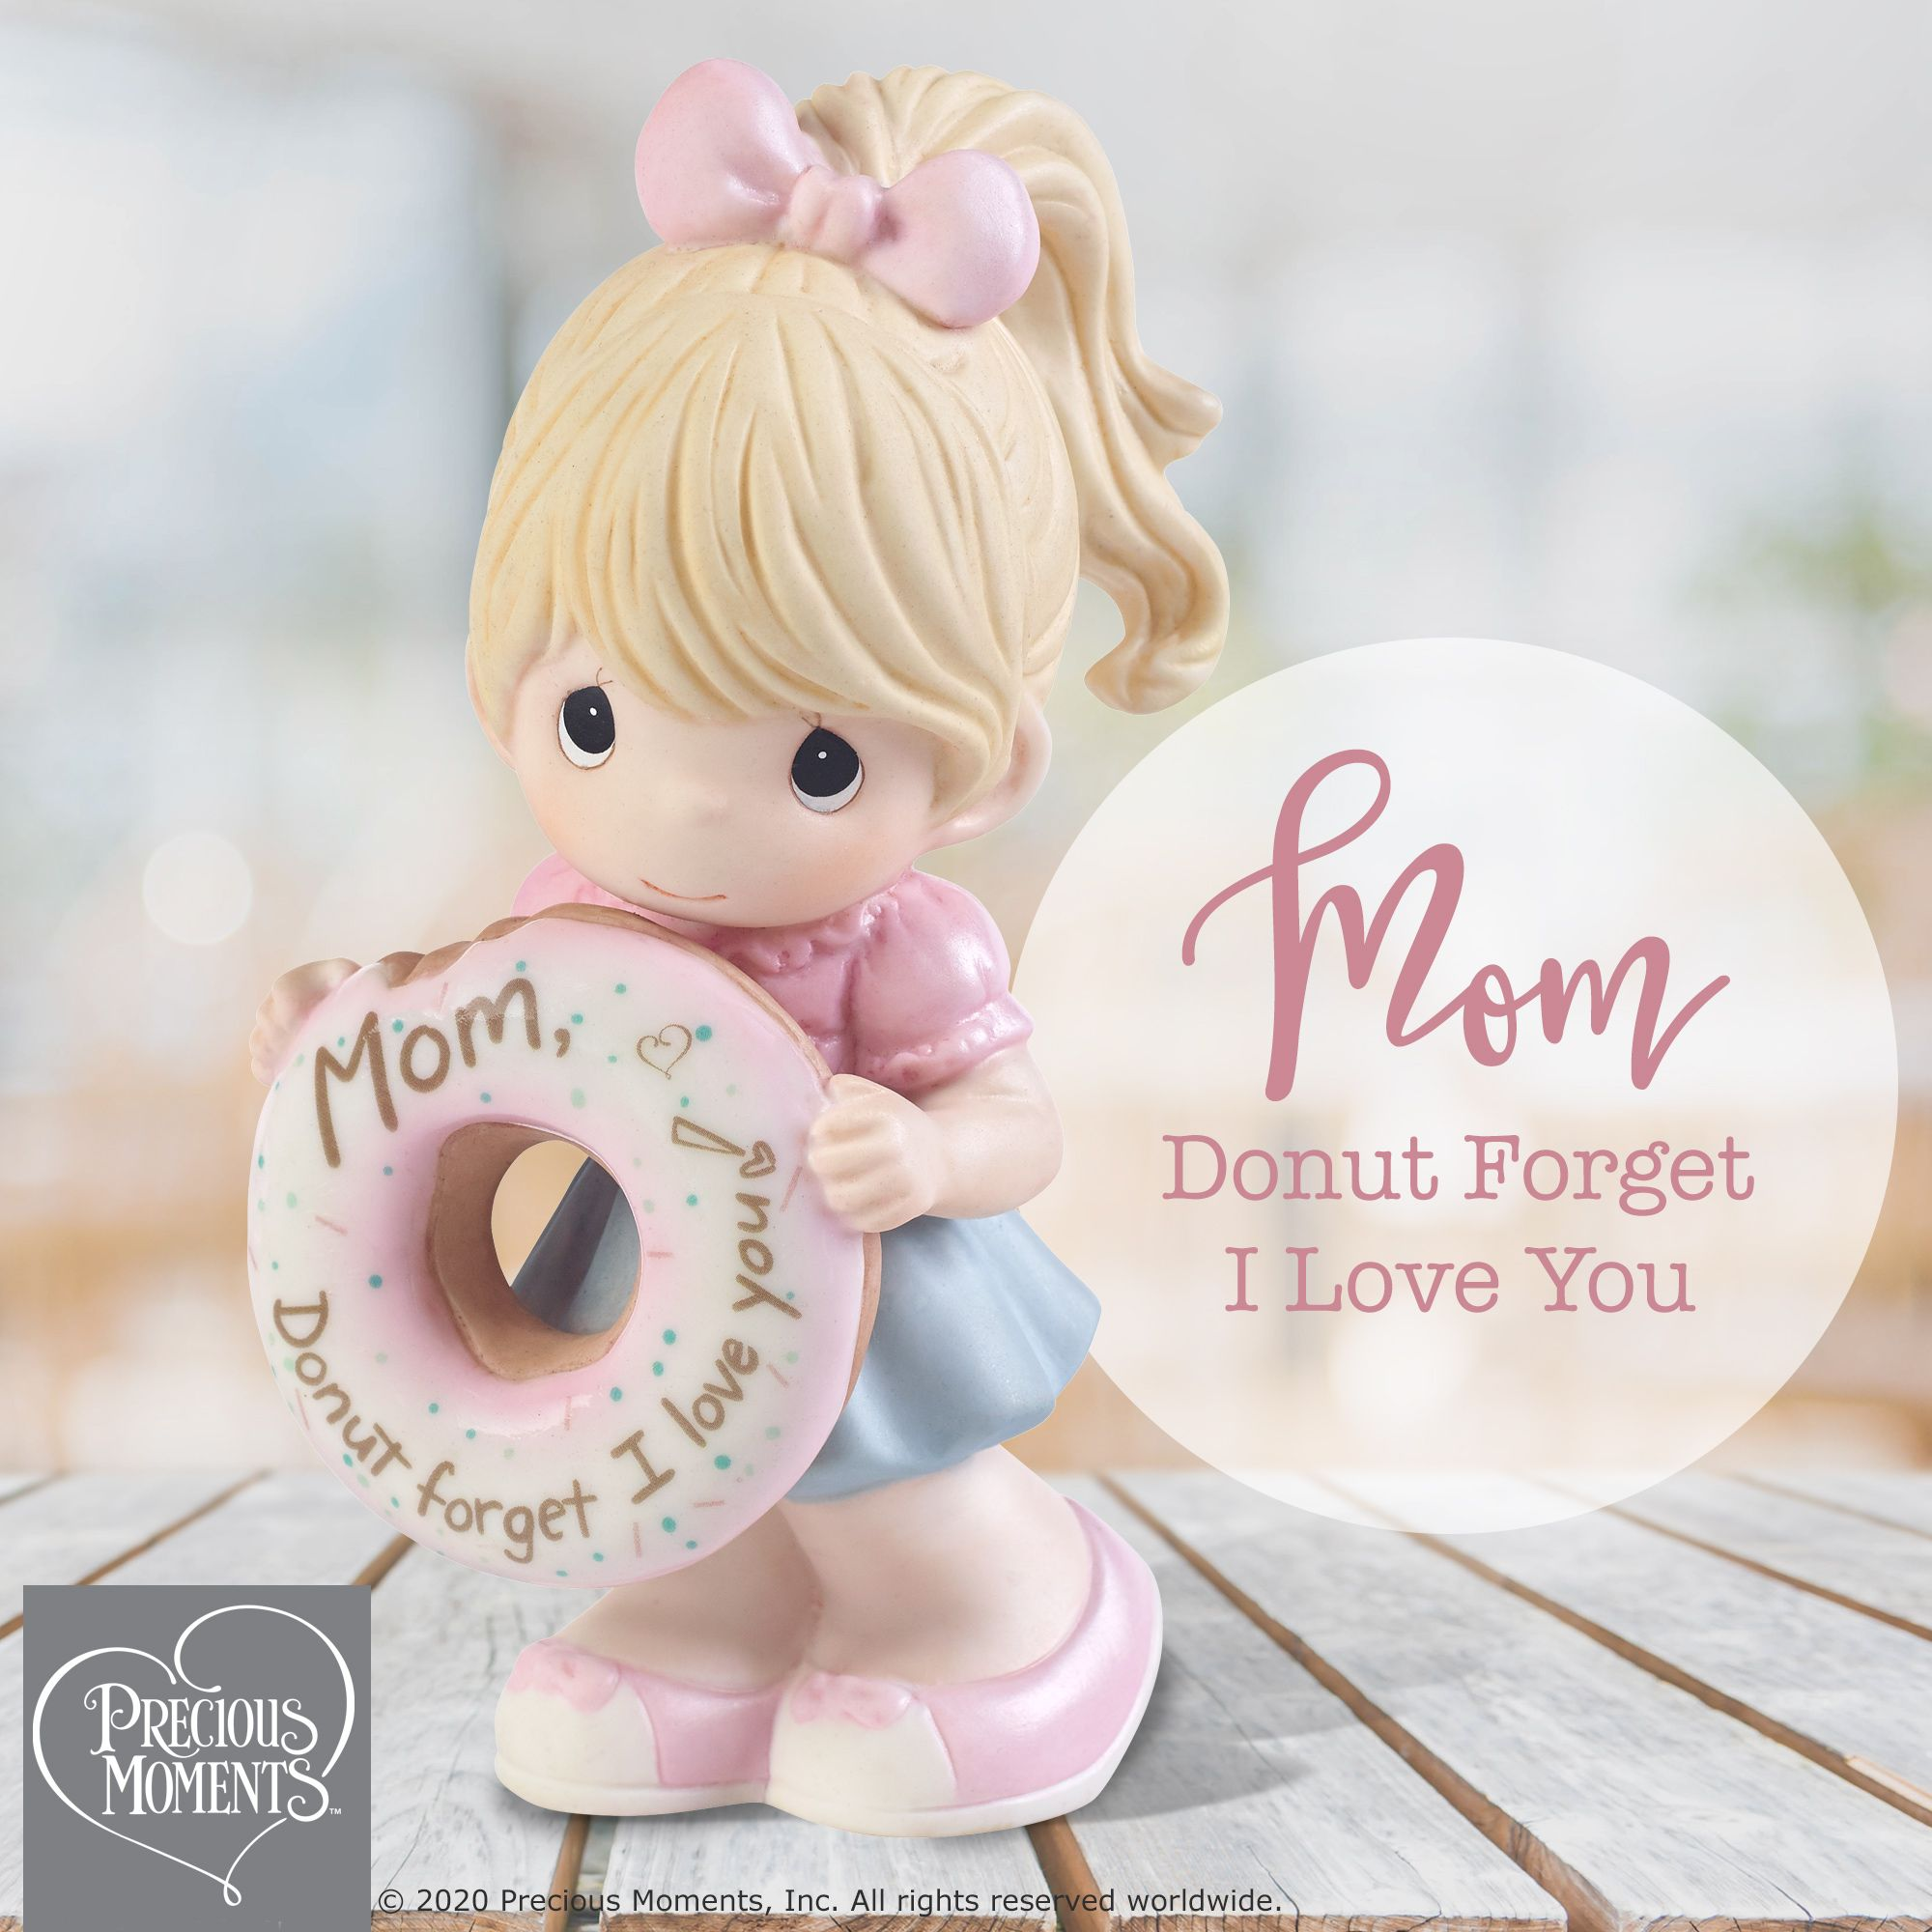 Mom Donut Forget I Love You Figurine Girl In 2020 Precious Moments Figurines Precious Moments Love And Marriage